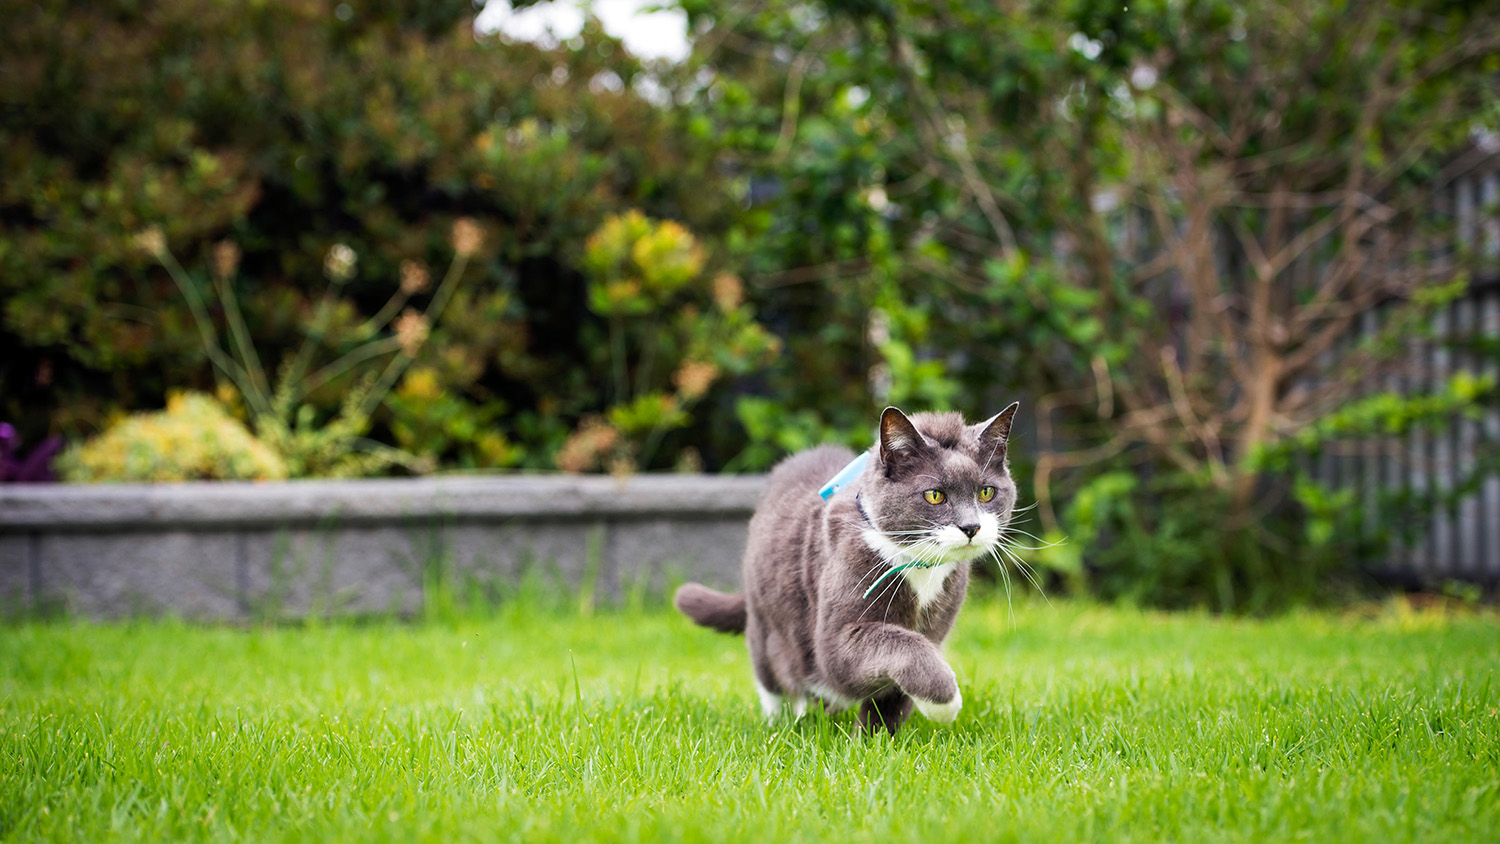 Keeping Cats Indoors Could Blunt Adverse Effects to Wildlife